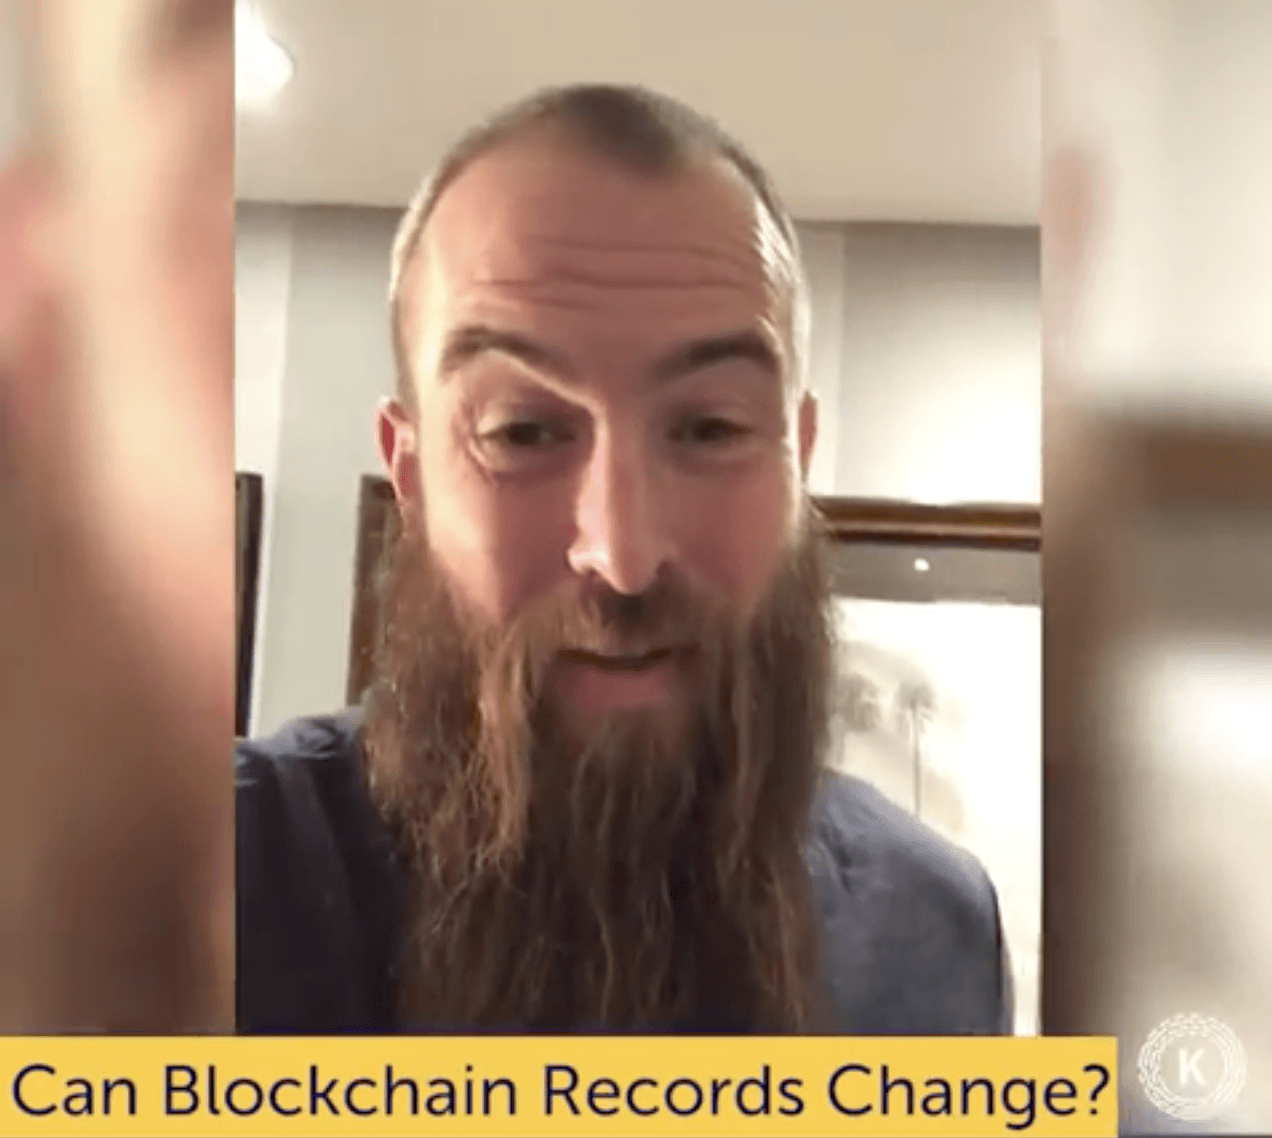 Can Blockchain Records Change